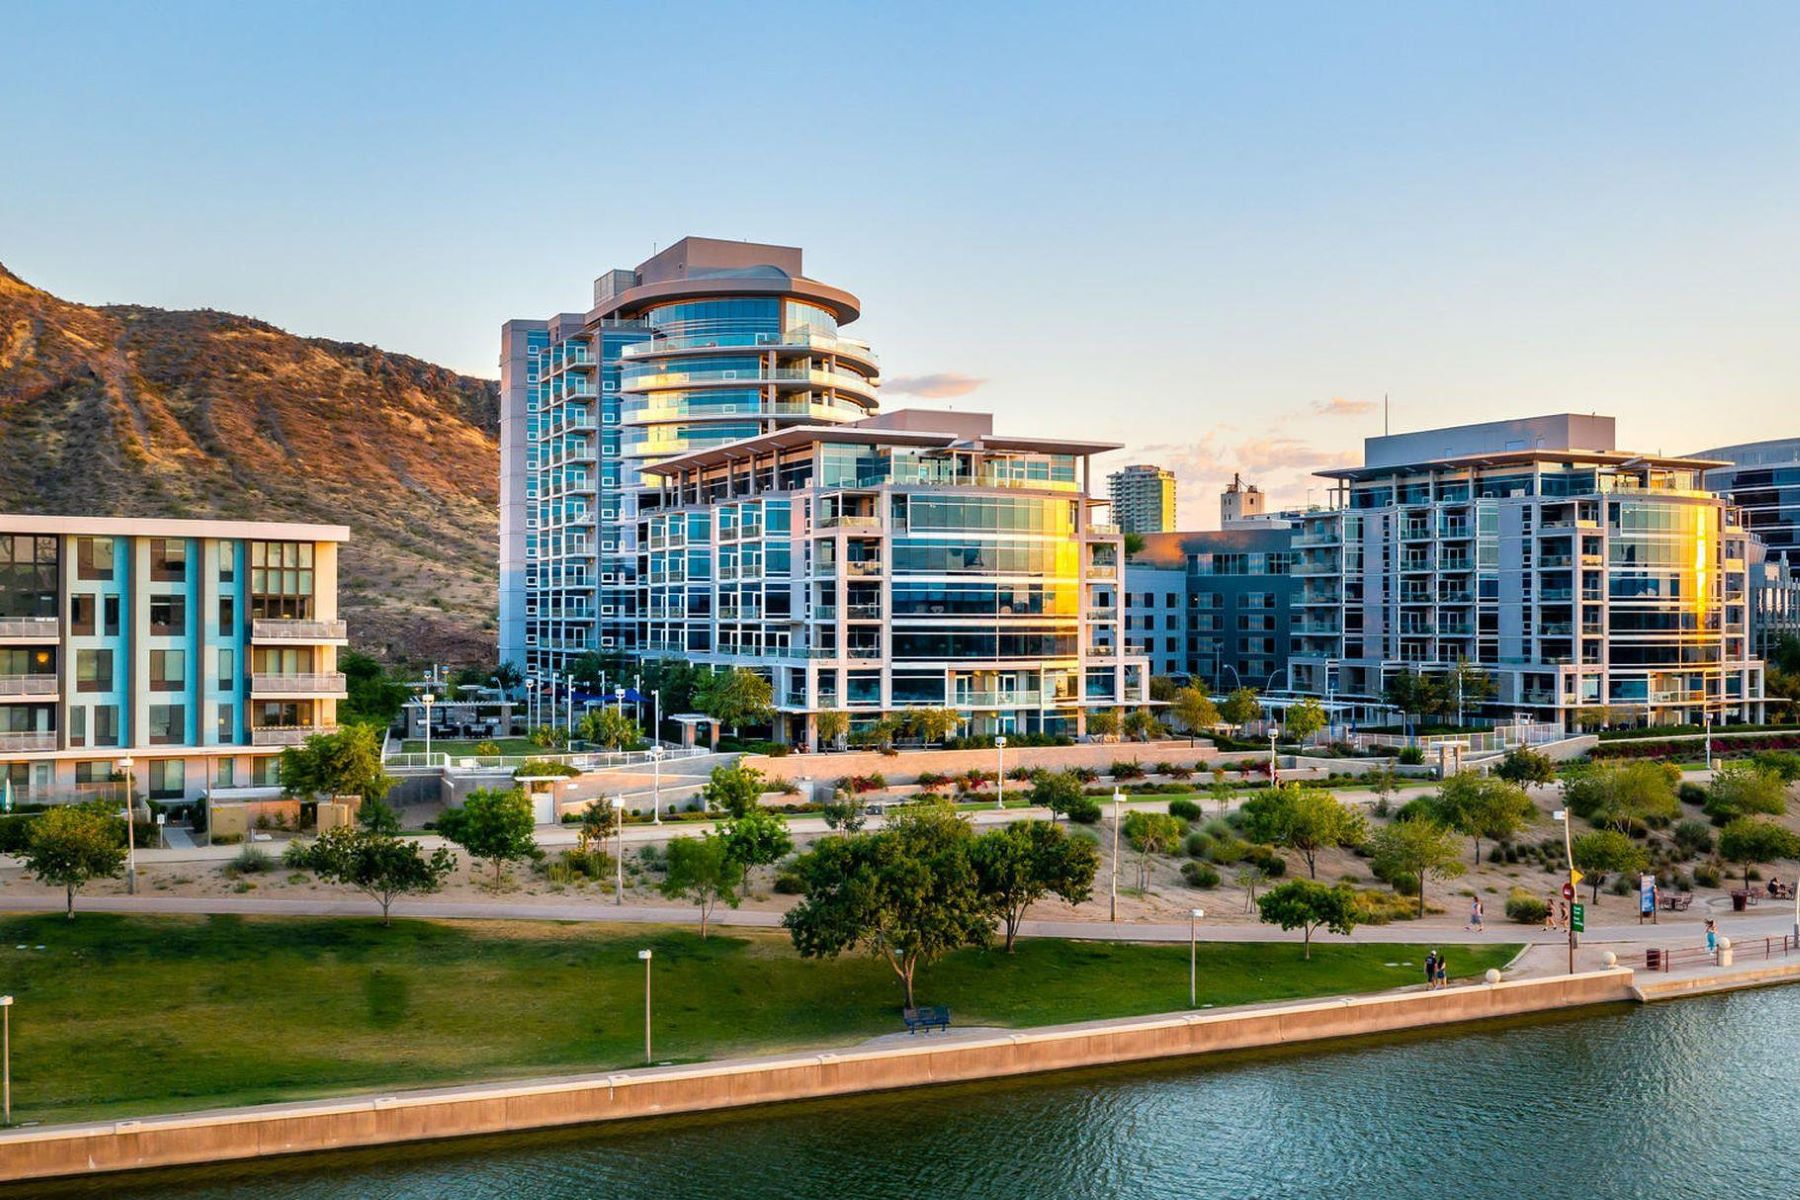 Condominiums 为 销售 在 Bridgeview At Hayden Ferry Lakeside Condominium 140 E Rio Salado PKWY 510 坦佩, 亚利桑那州 85281 美国